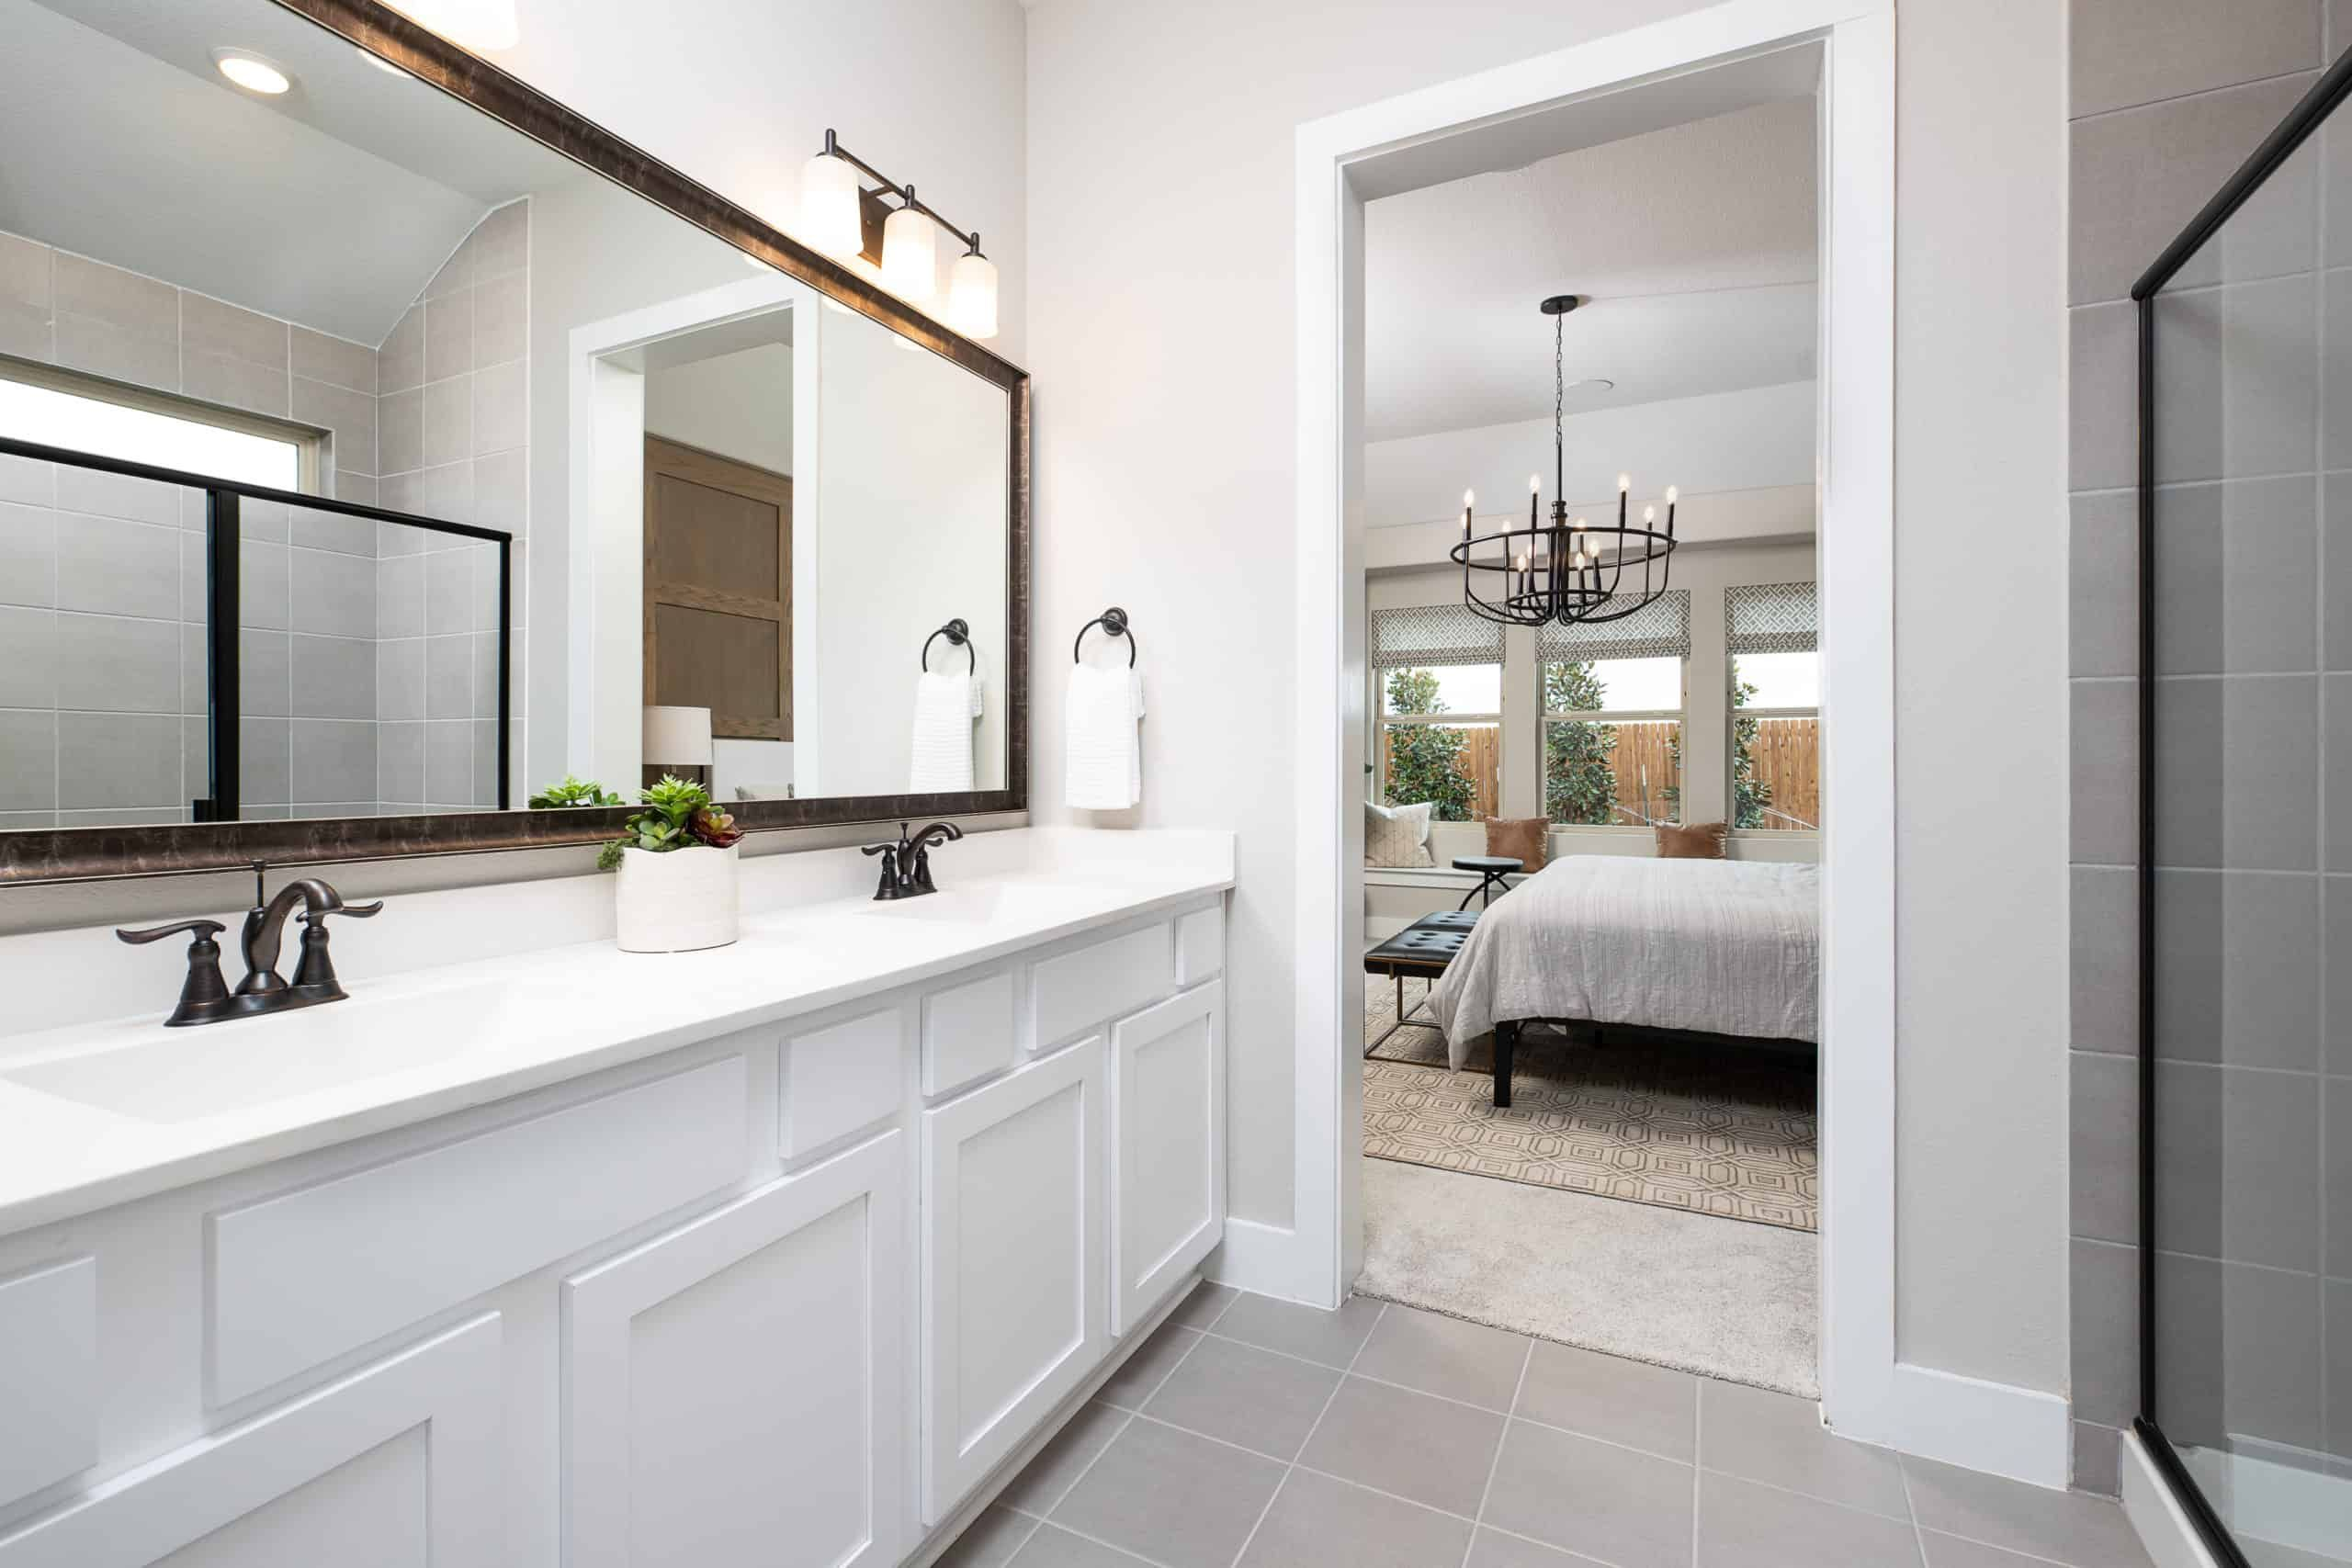 Bathroom featured in the Madison By Tri Pointe Homes in Fort Worth, TX